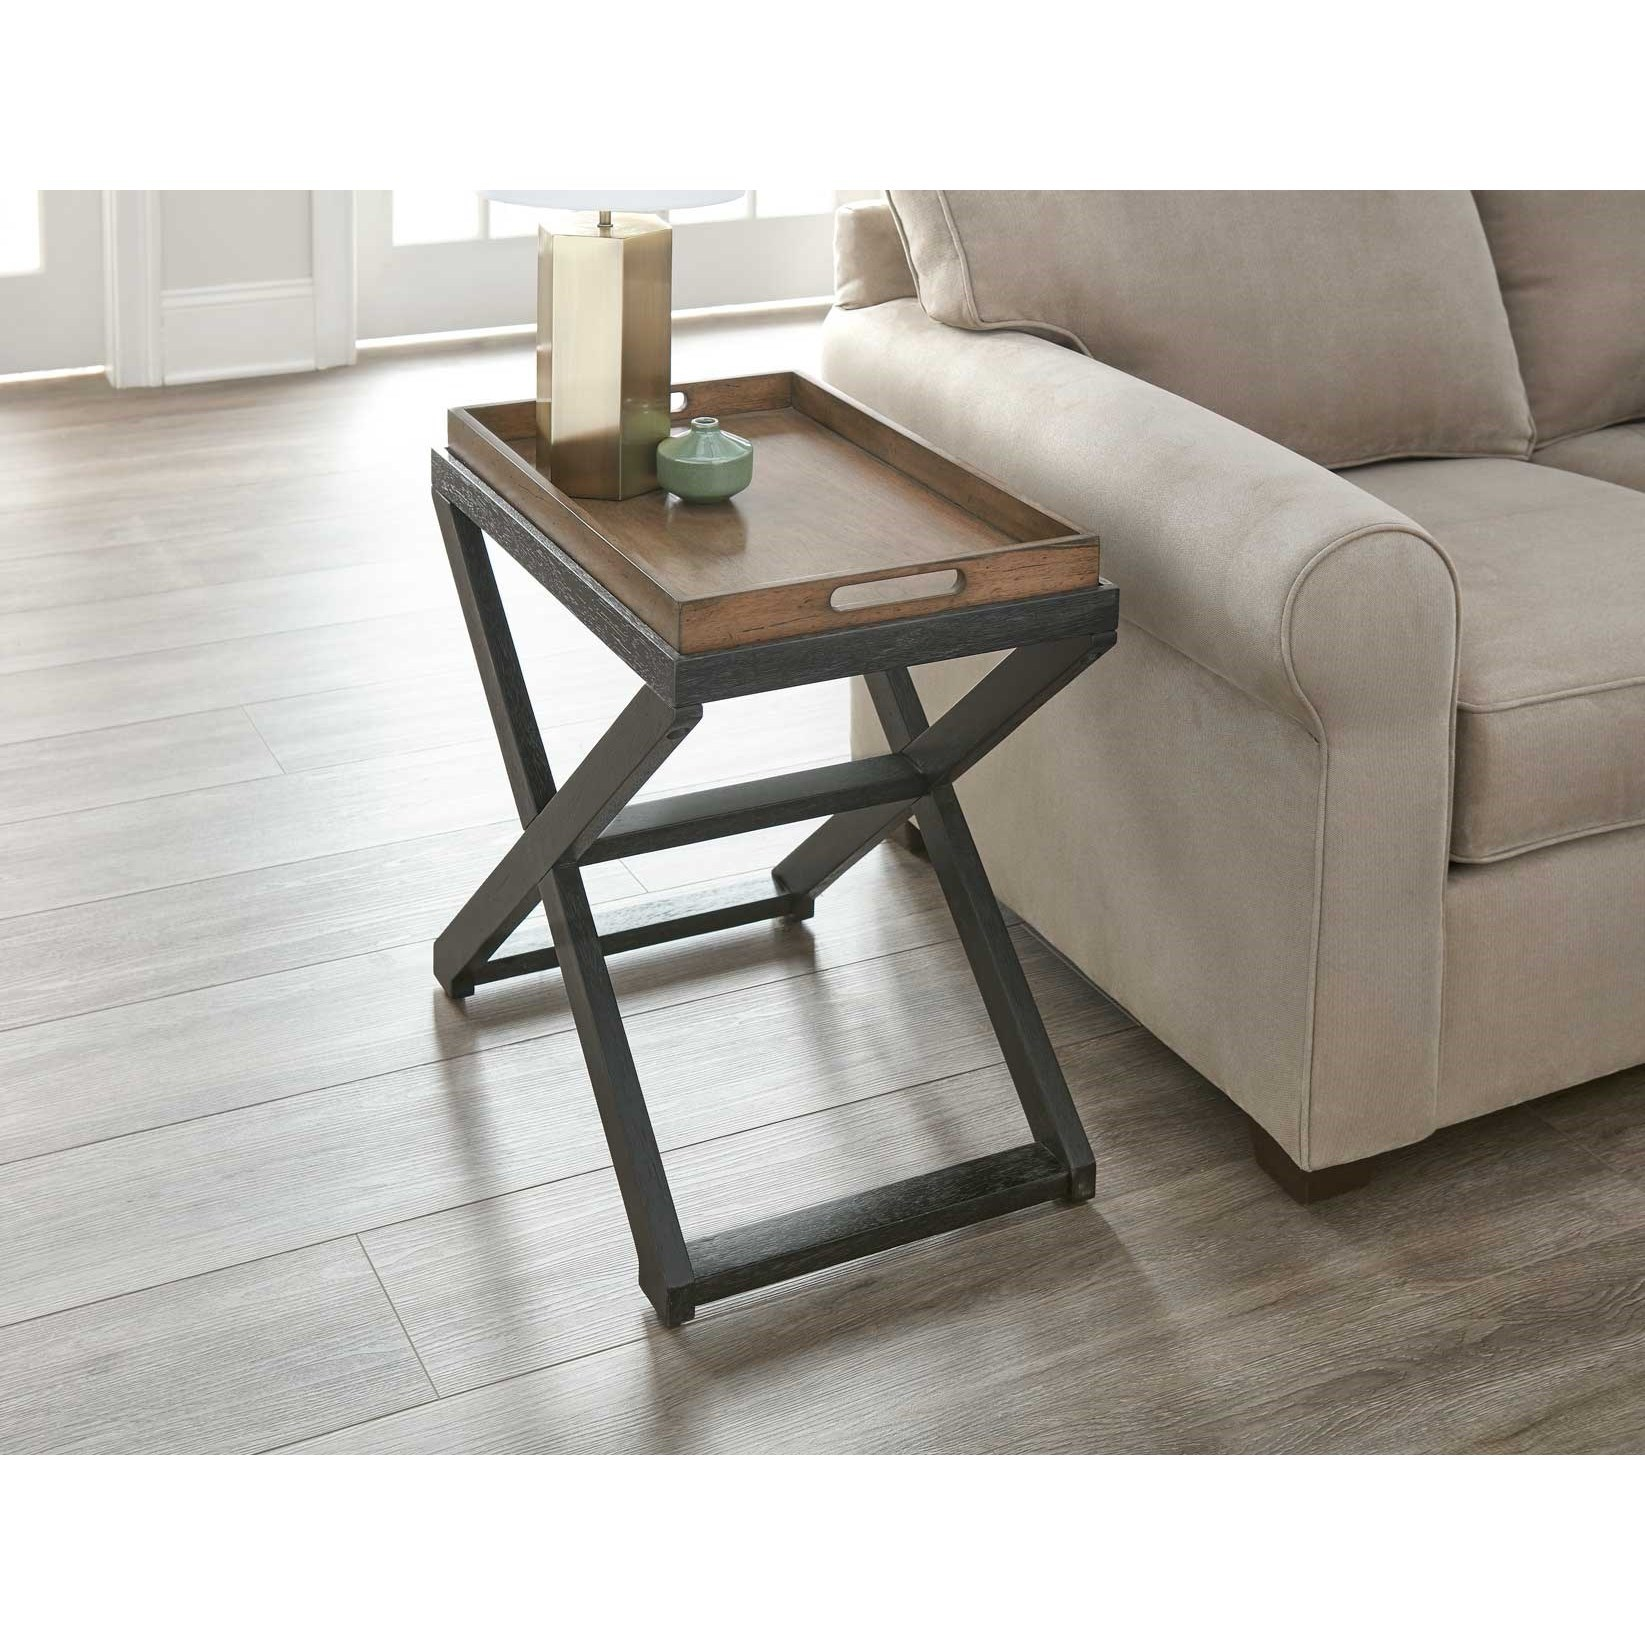 Topeka Chairside Table by Steve Silver at Walker's Furniture